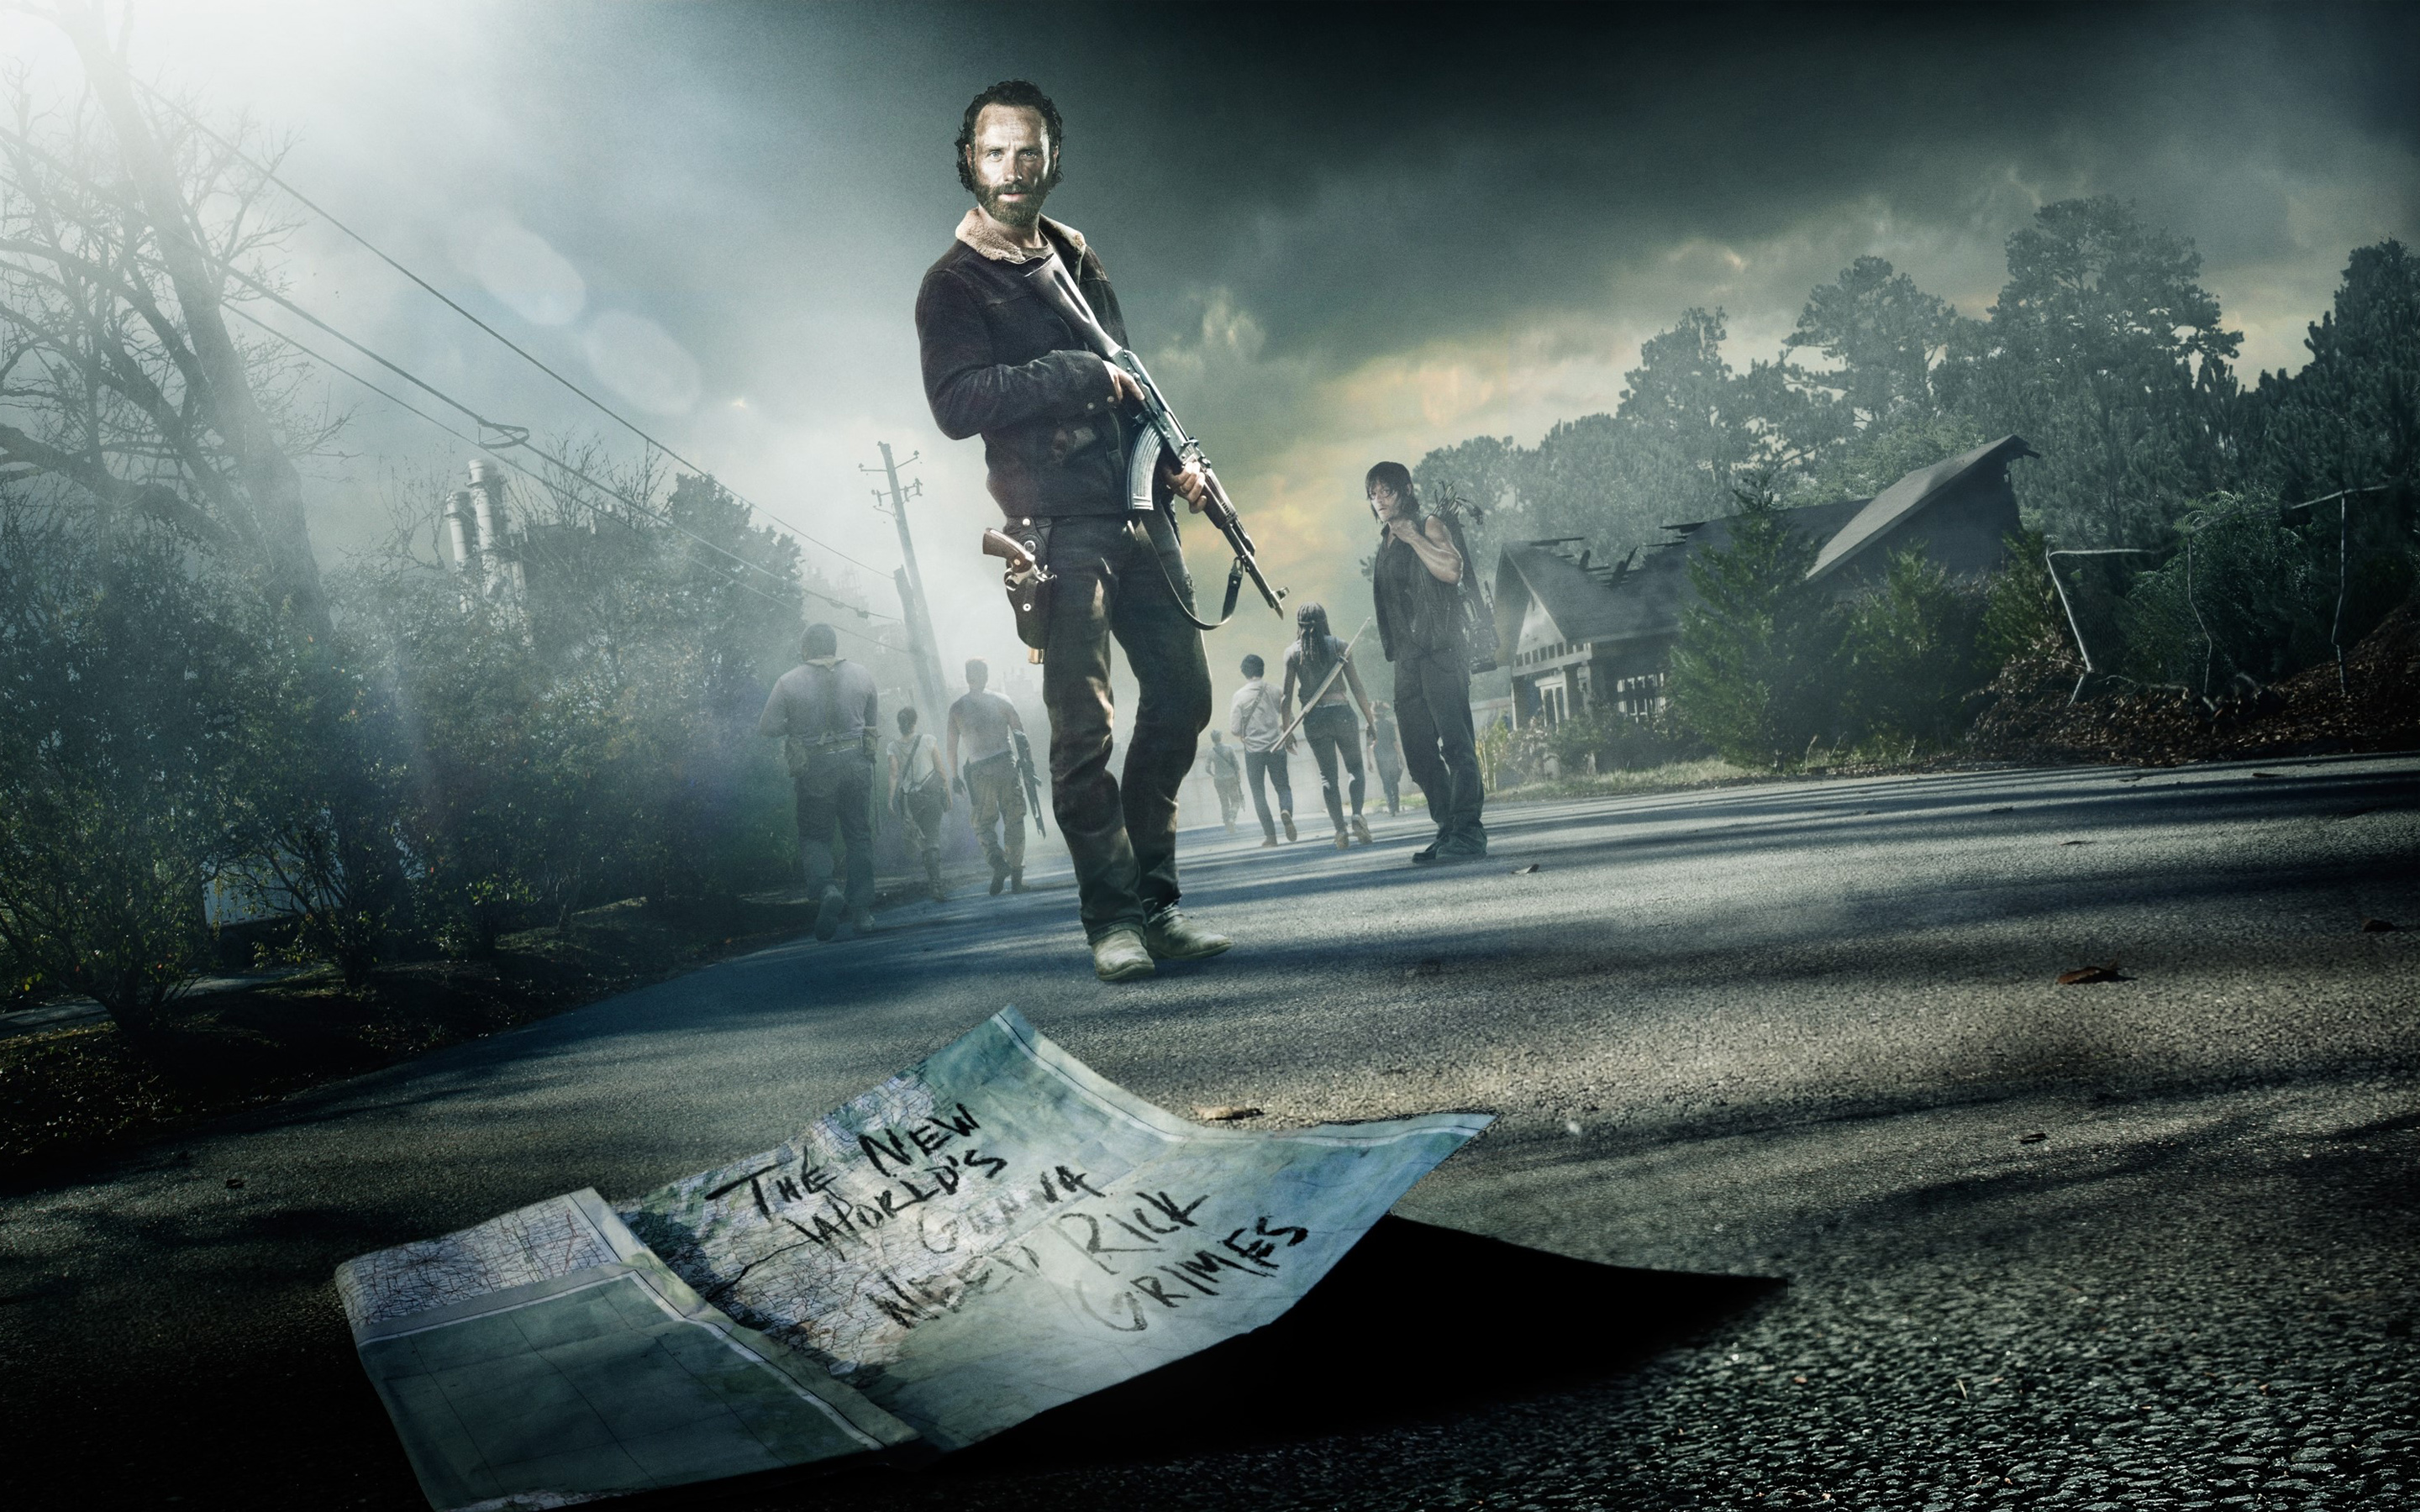 Free Download The Walking Dead Season 5 Wallpapers Hd Wallpapers